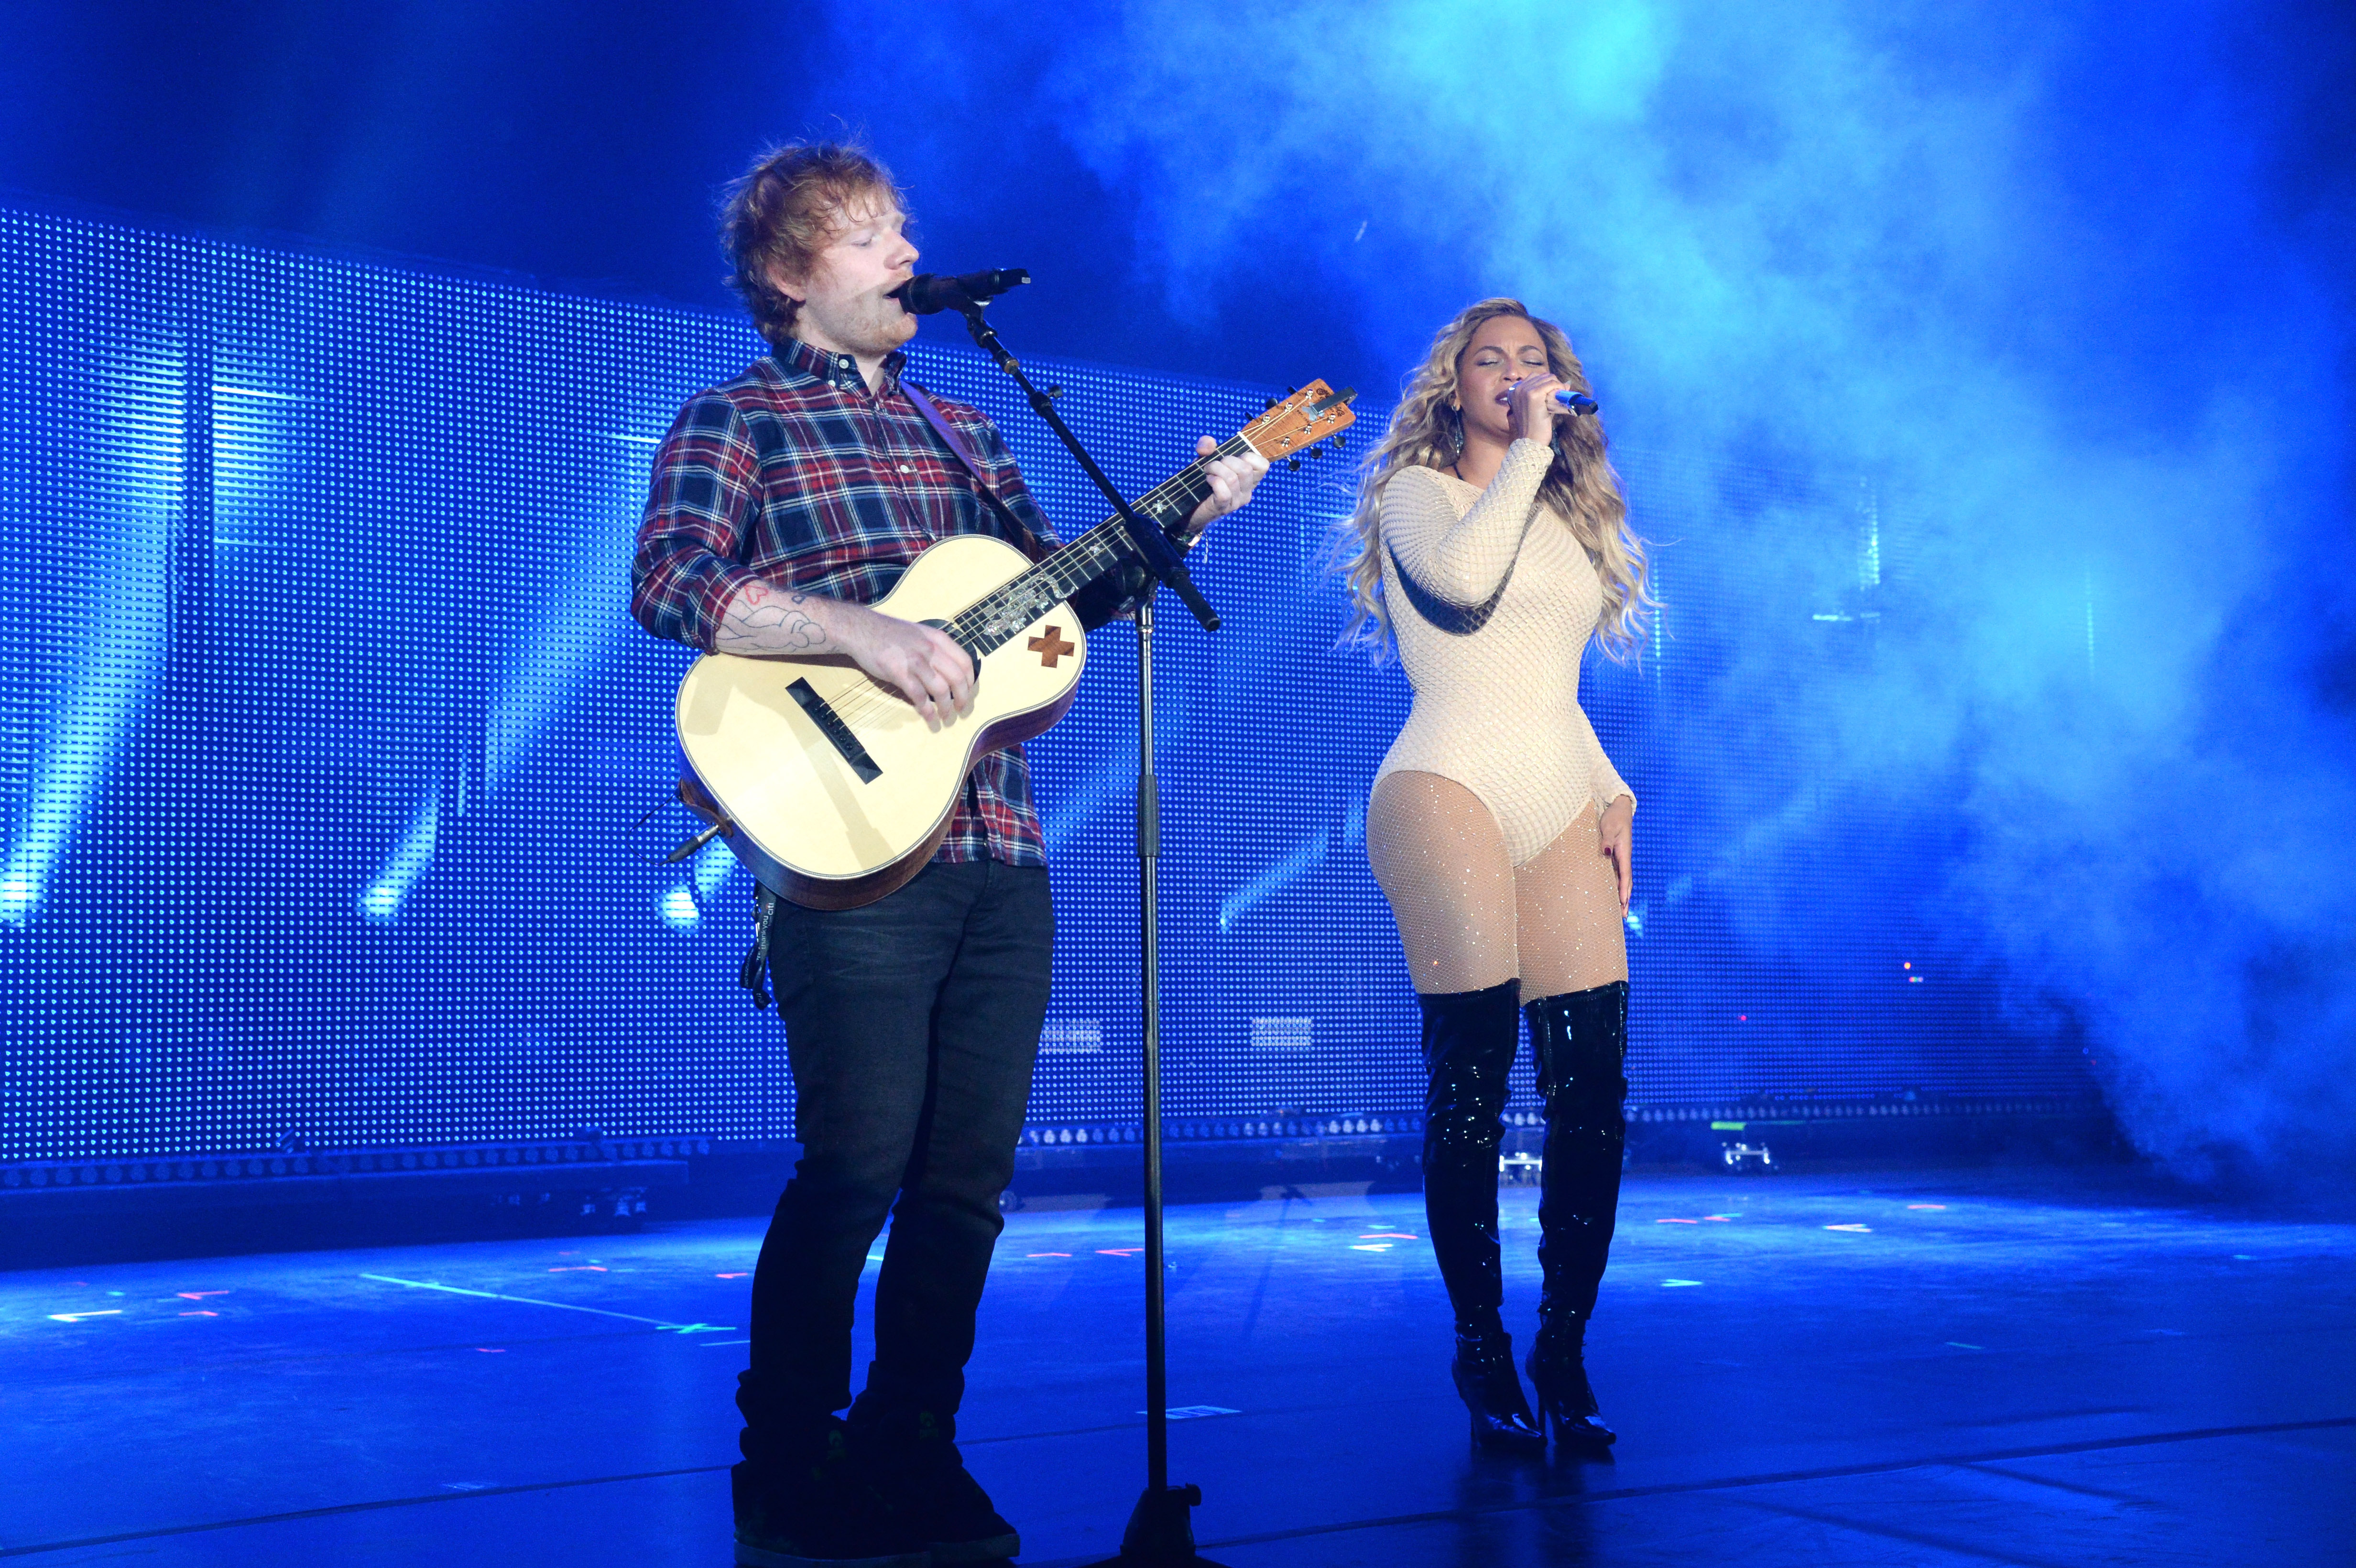 Ed Sheeran and Beyonce perform onstage during 2015 Global Citizen Festival to end extreme poverty by 2030 in Central Park on September 26, 2015 in New York City.